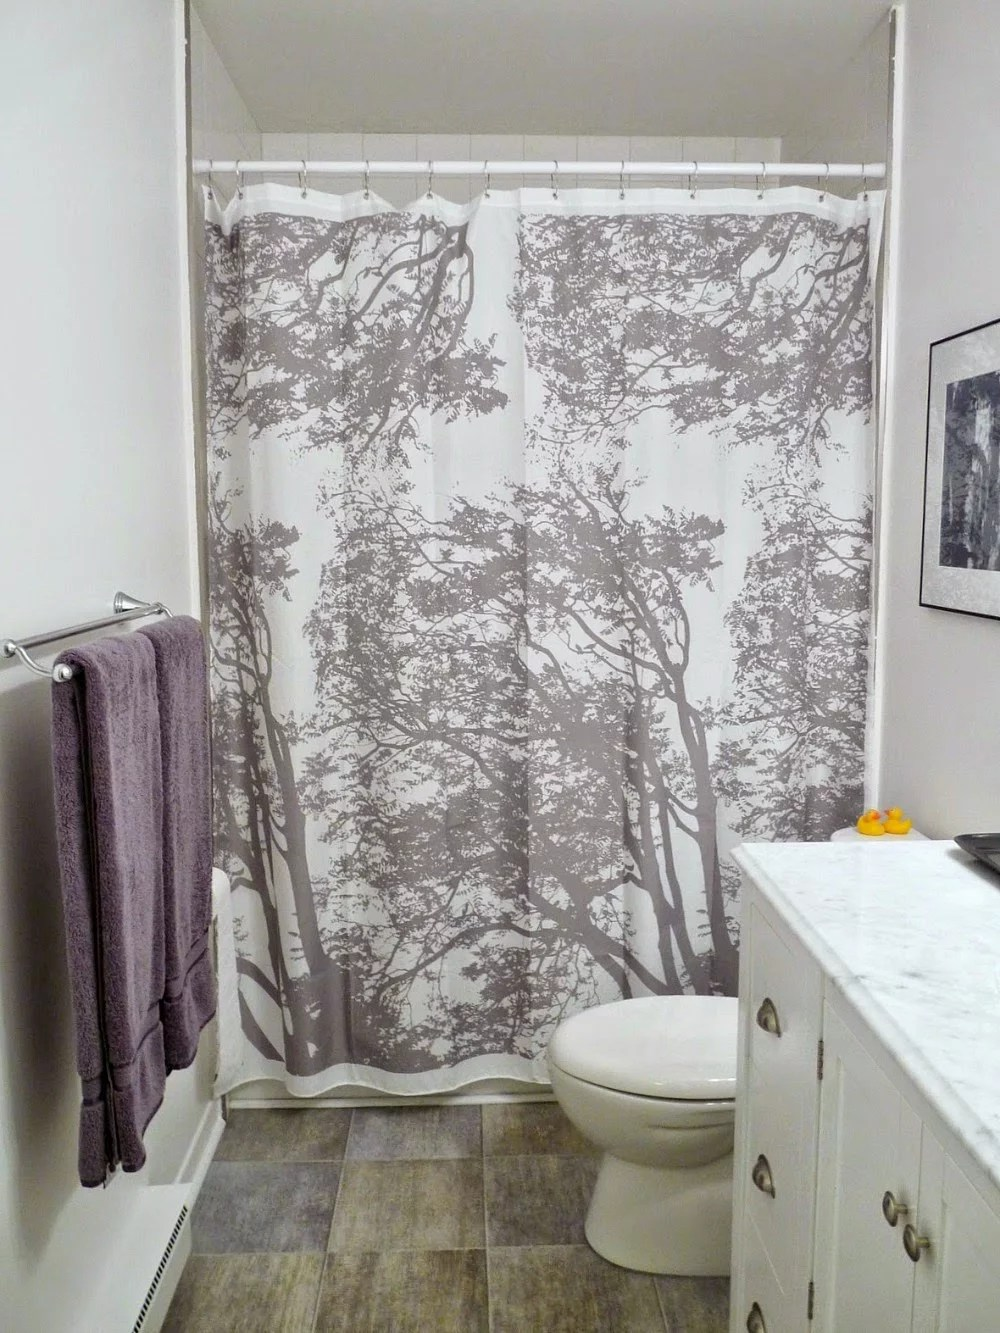 Image Result For Diy Remodel Bathroom Pictures Of Our Bathroom Remodel And Some Lessons